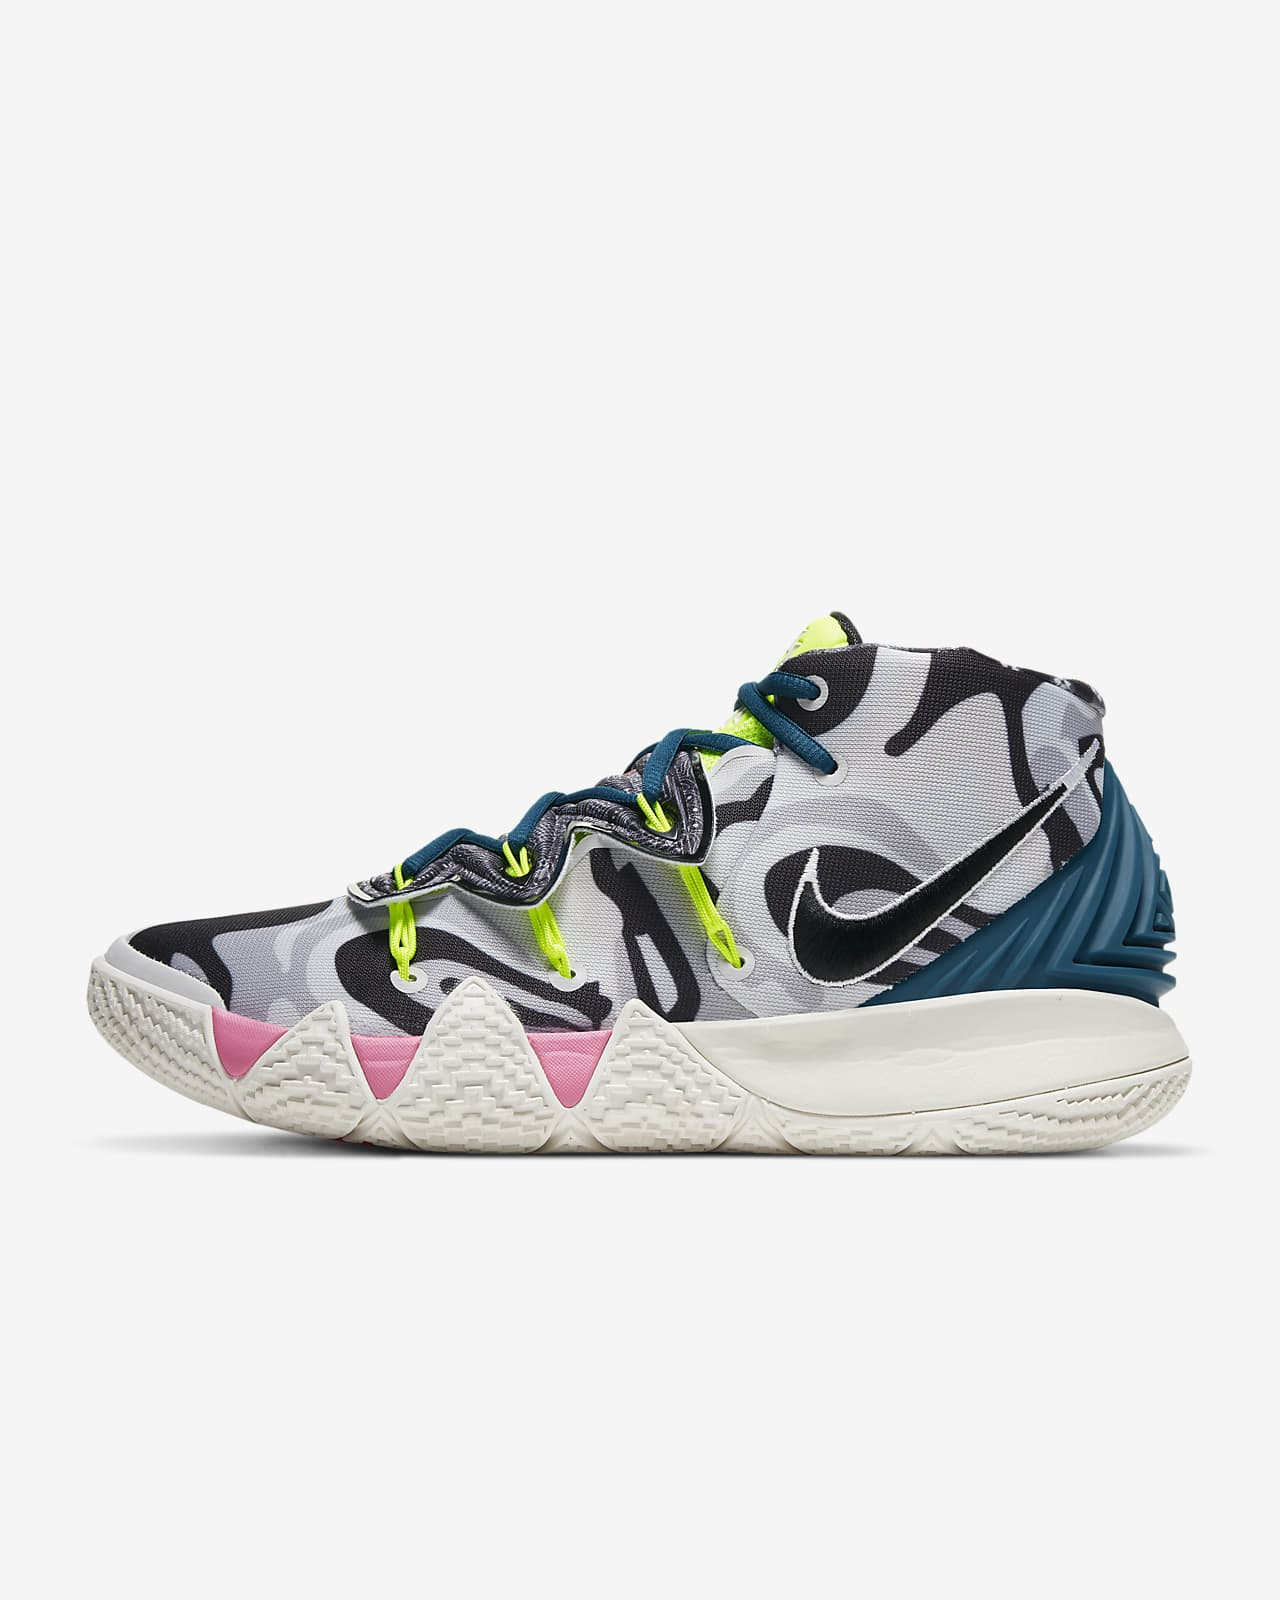 Kybrid S2 EP Basketball Shoe